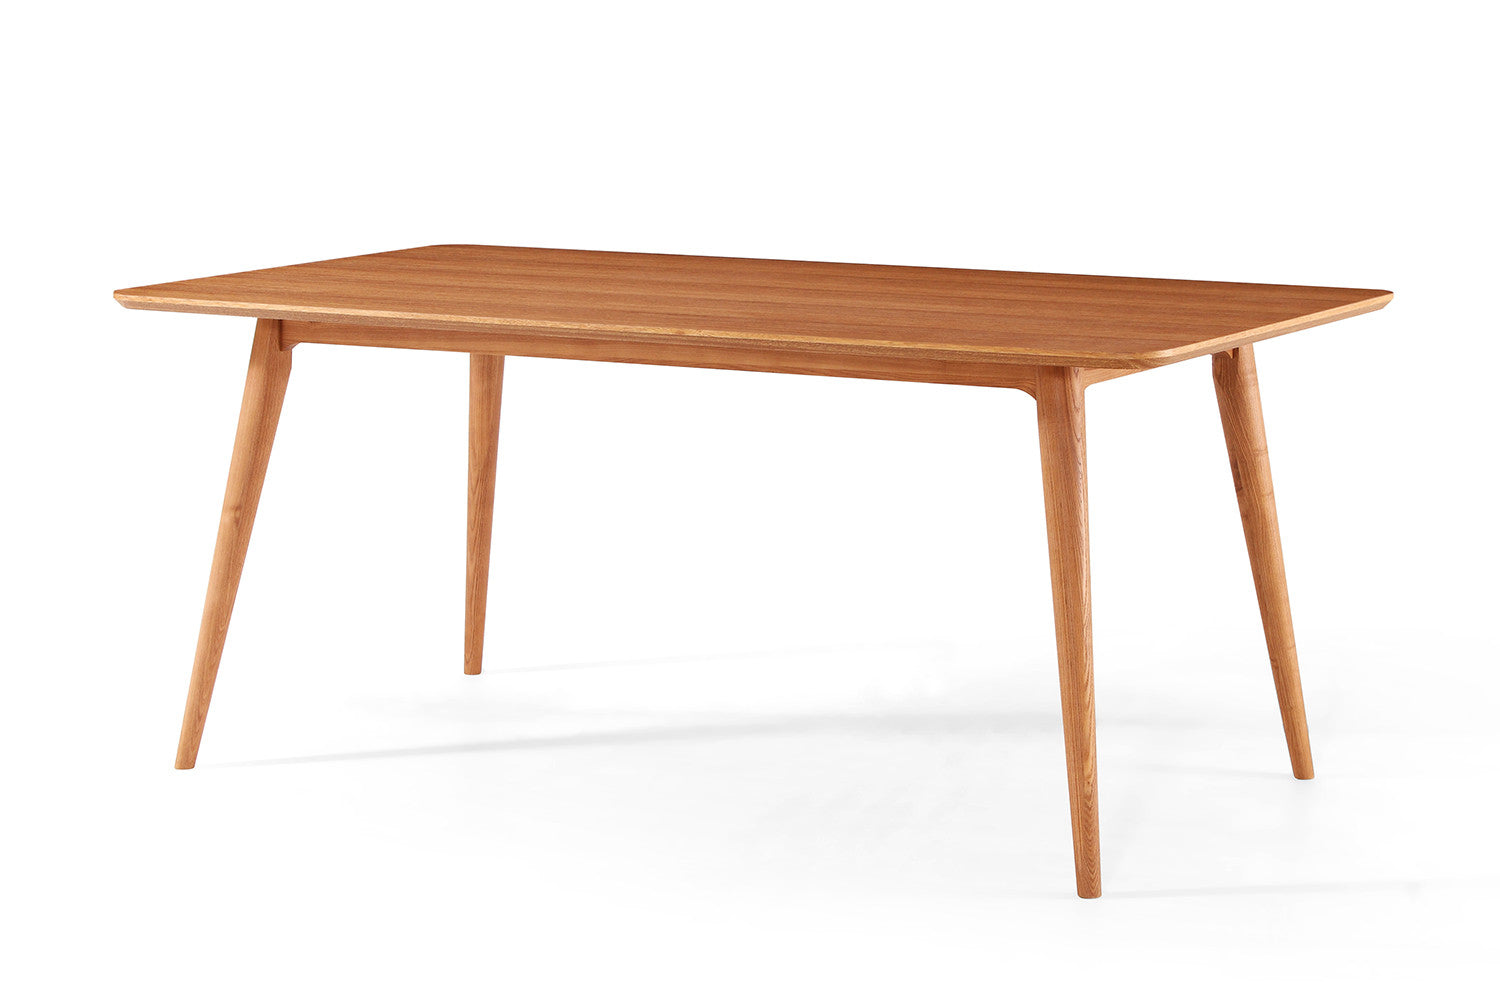 Table de salle manger design en bois julia dewarens for Table a manger scandinave